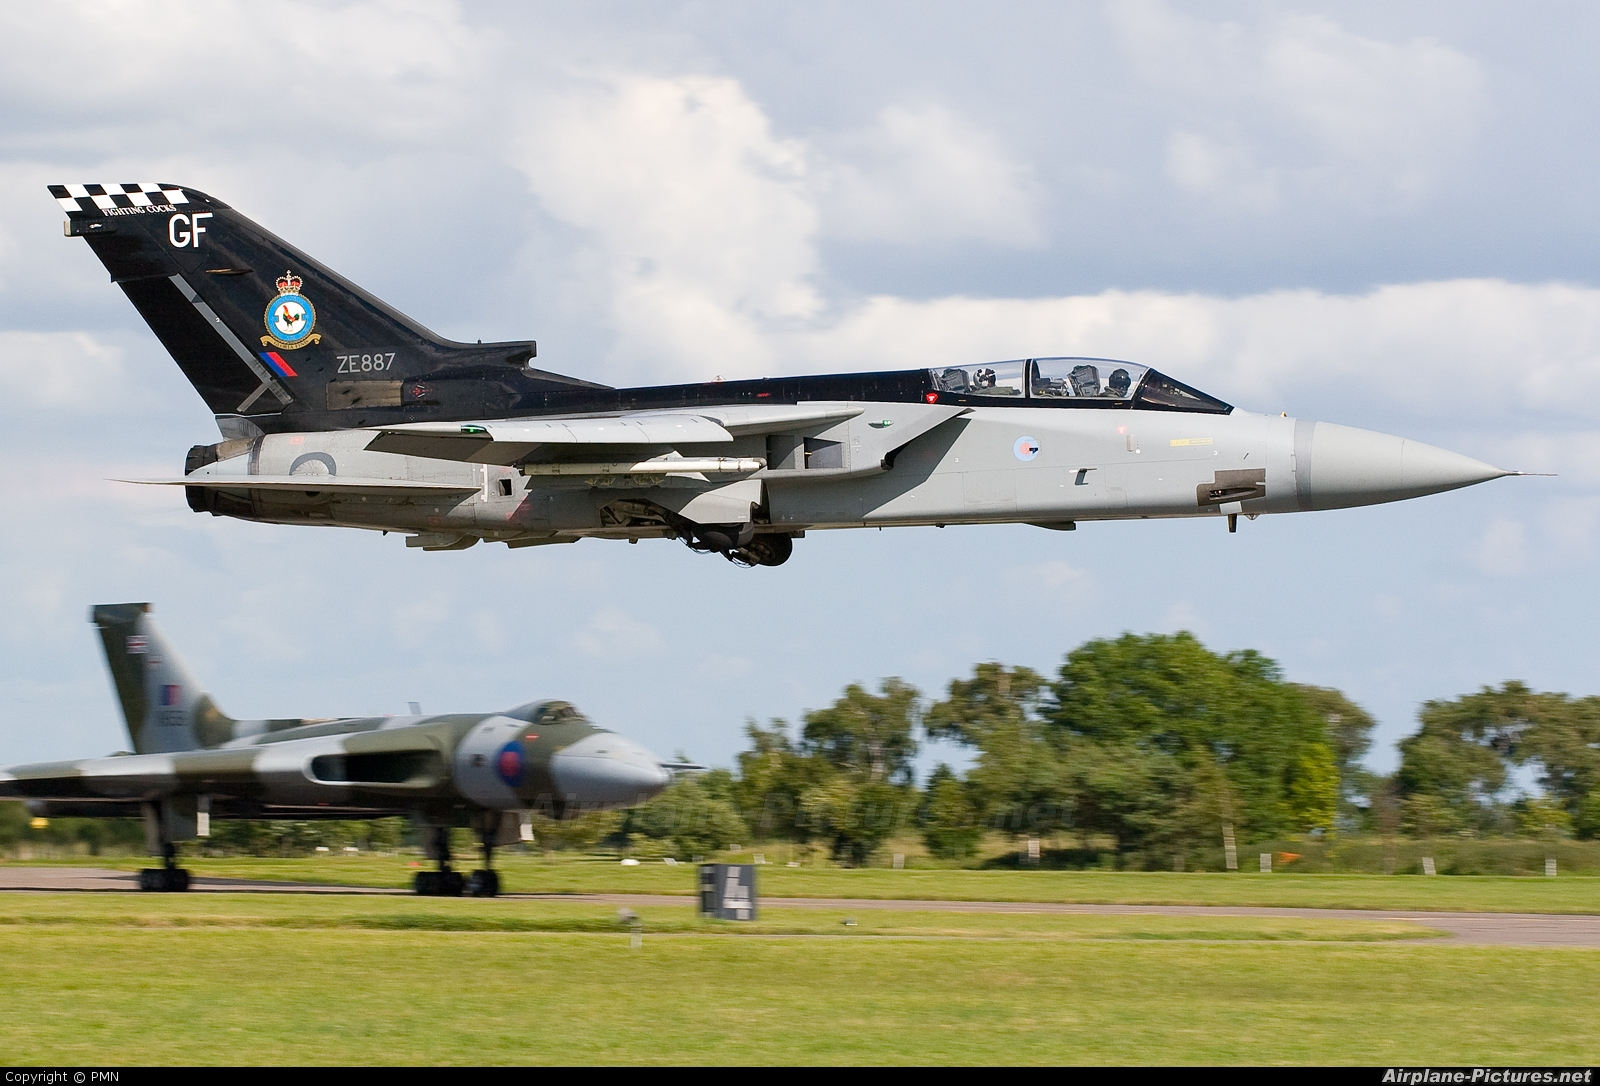 Royal Air Force - aircraft at Waddington